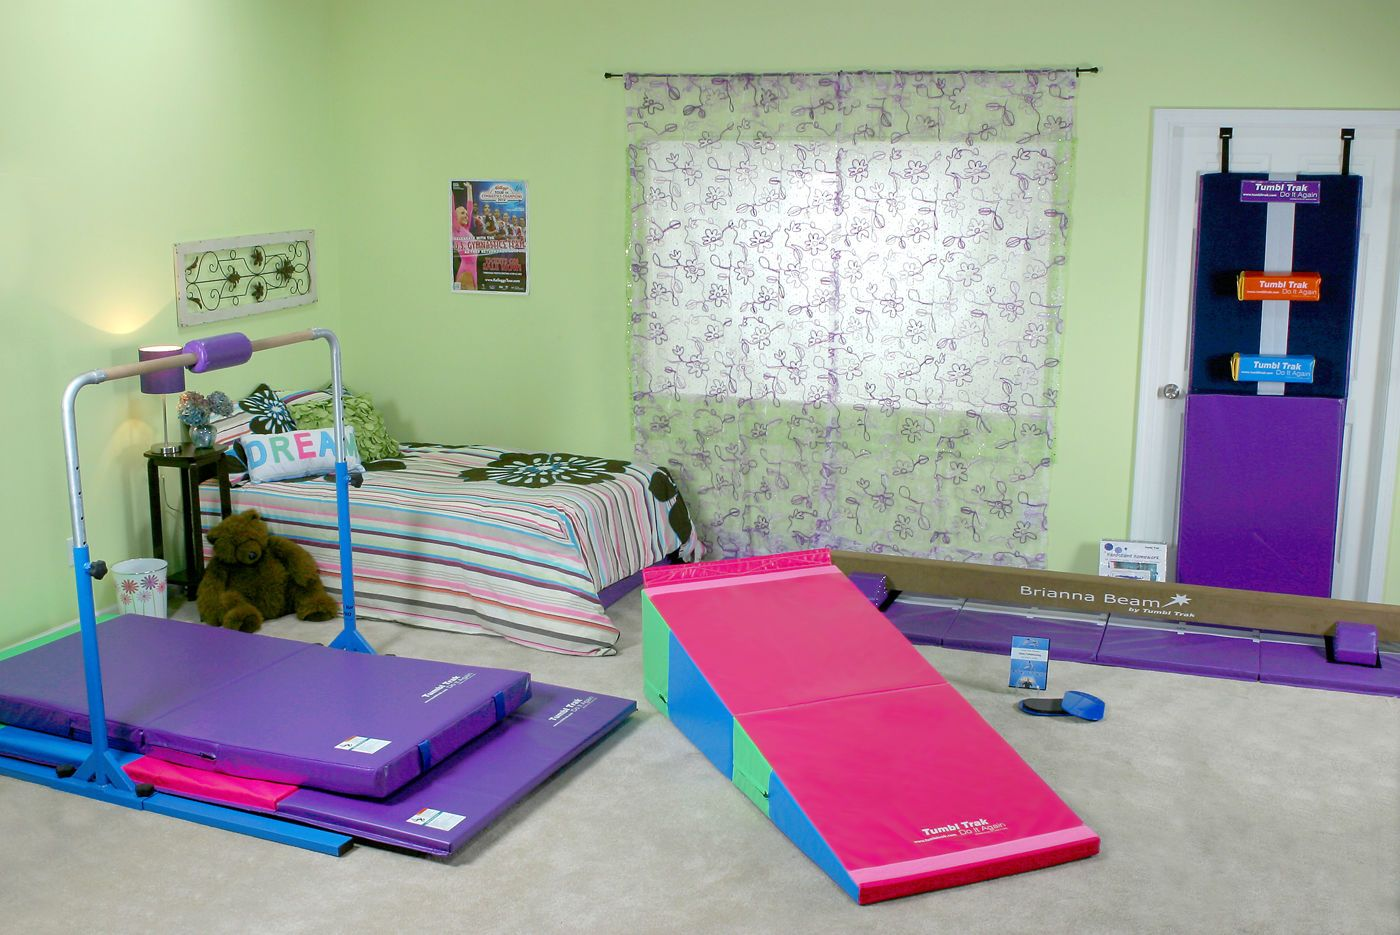 medium we mat never products purple folding mats gymnastics incline sell used new pink